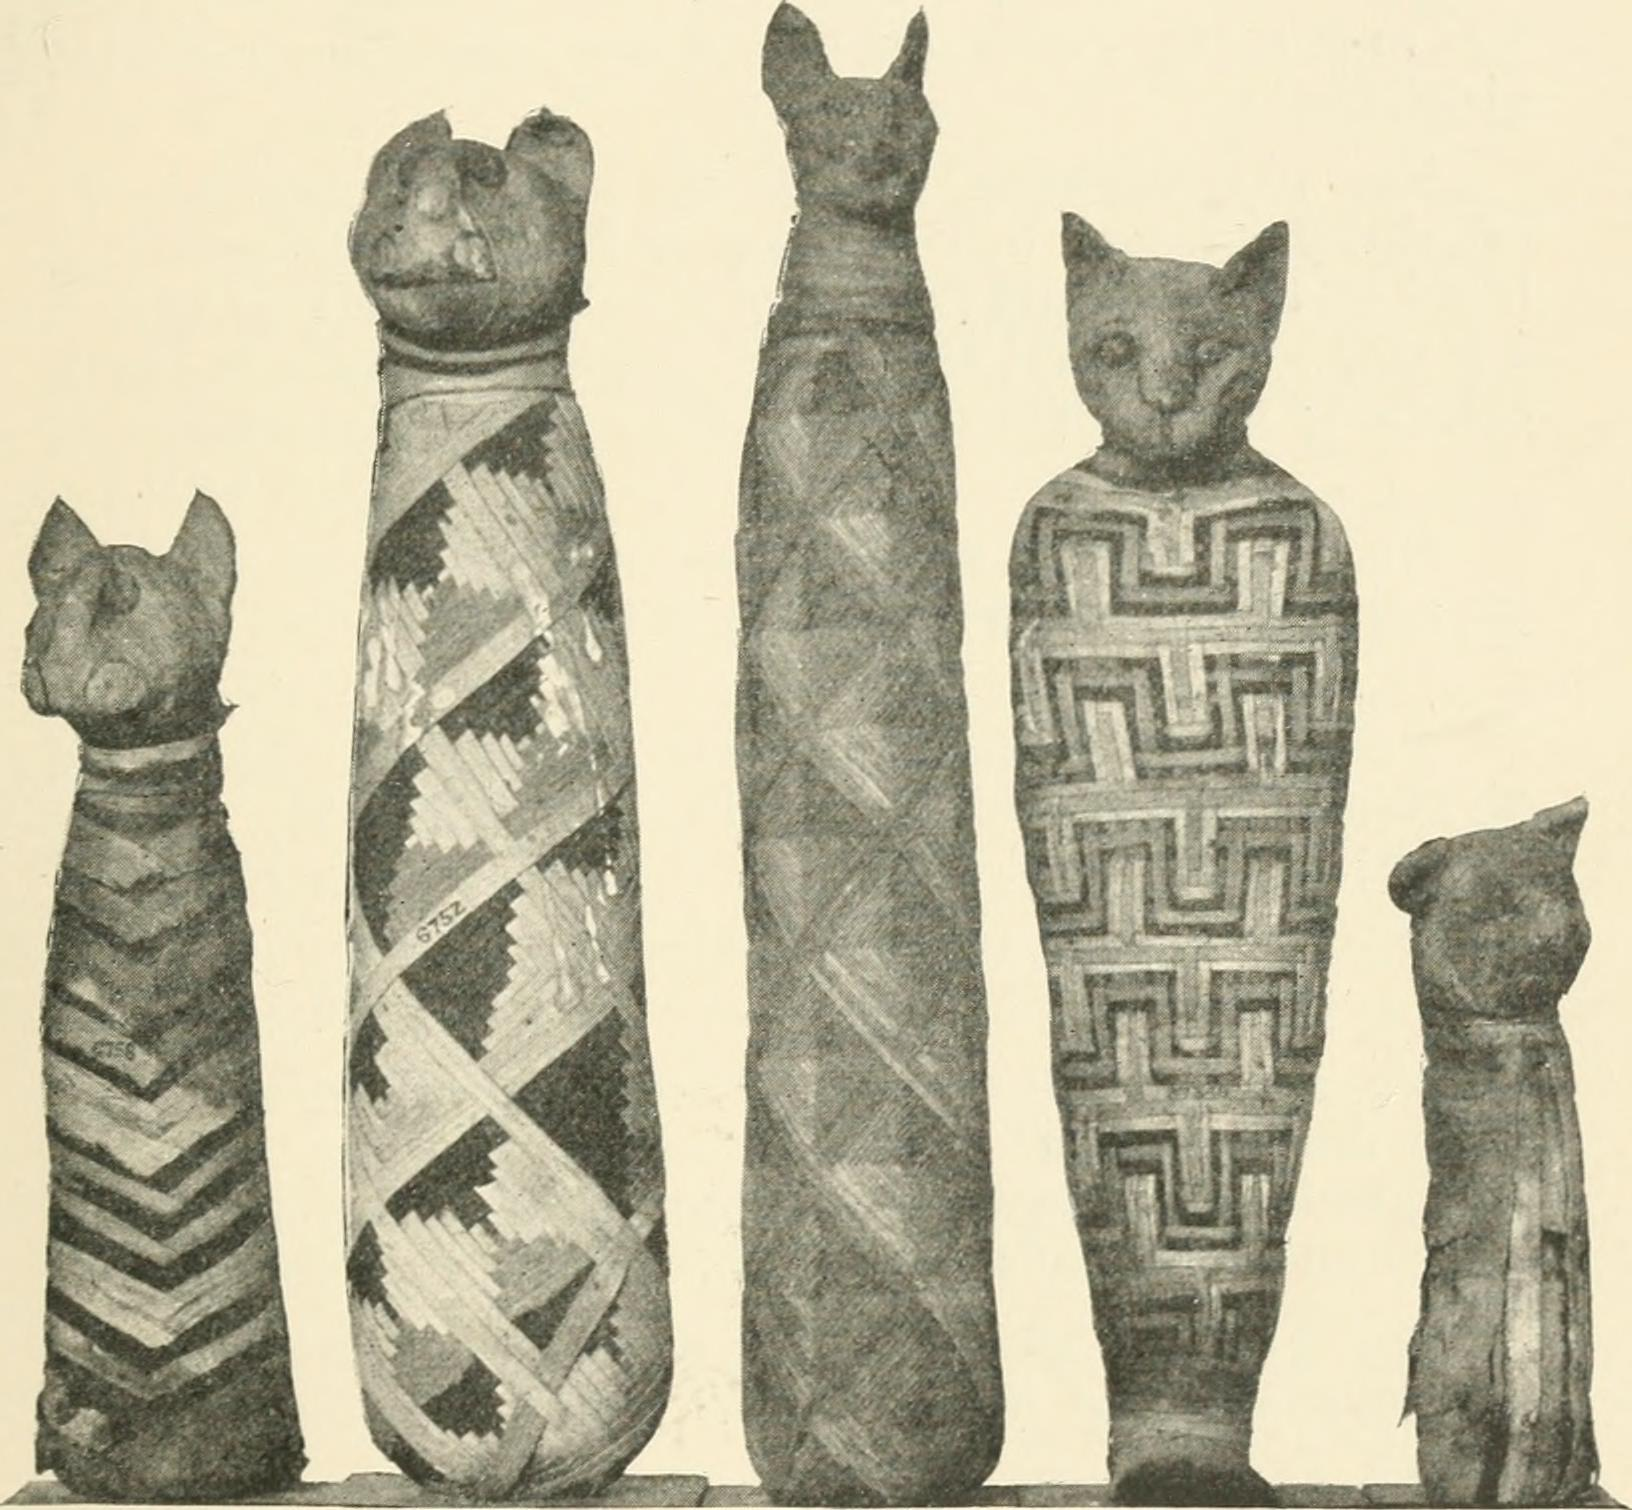 Ancient Egyptians wanted their pet kitties to be with them in the afterlife, so they were mummified and put into their tombs (let's hope they were at least allowed to live out their natural lives)